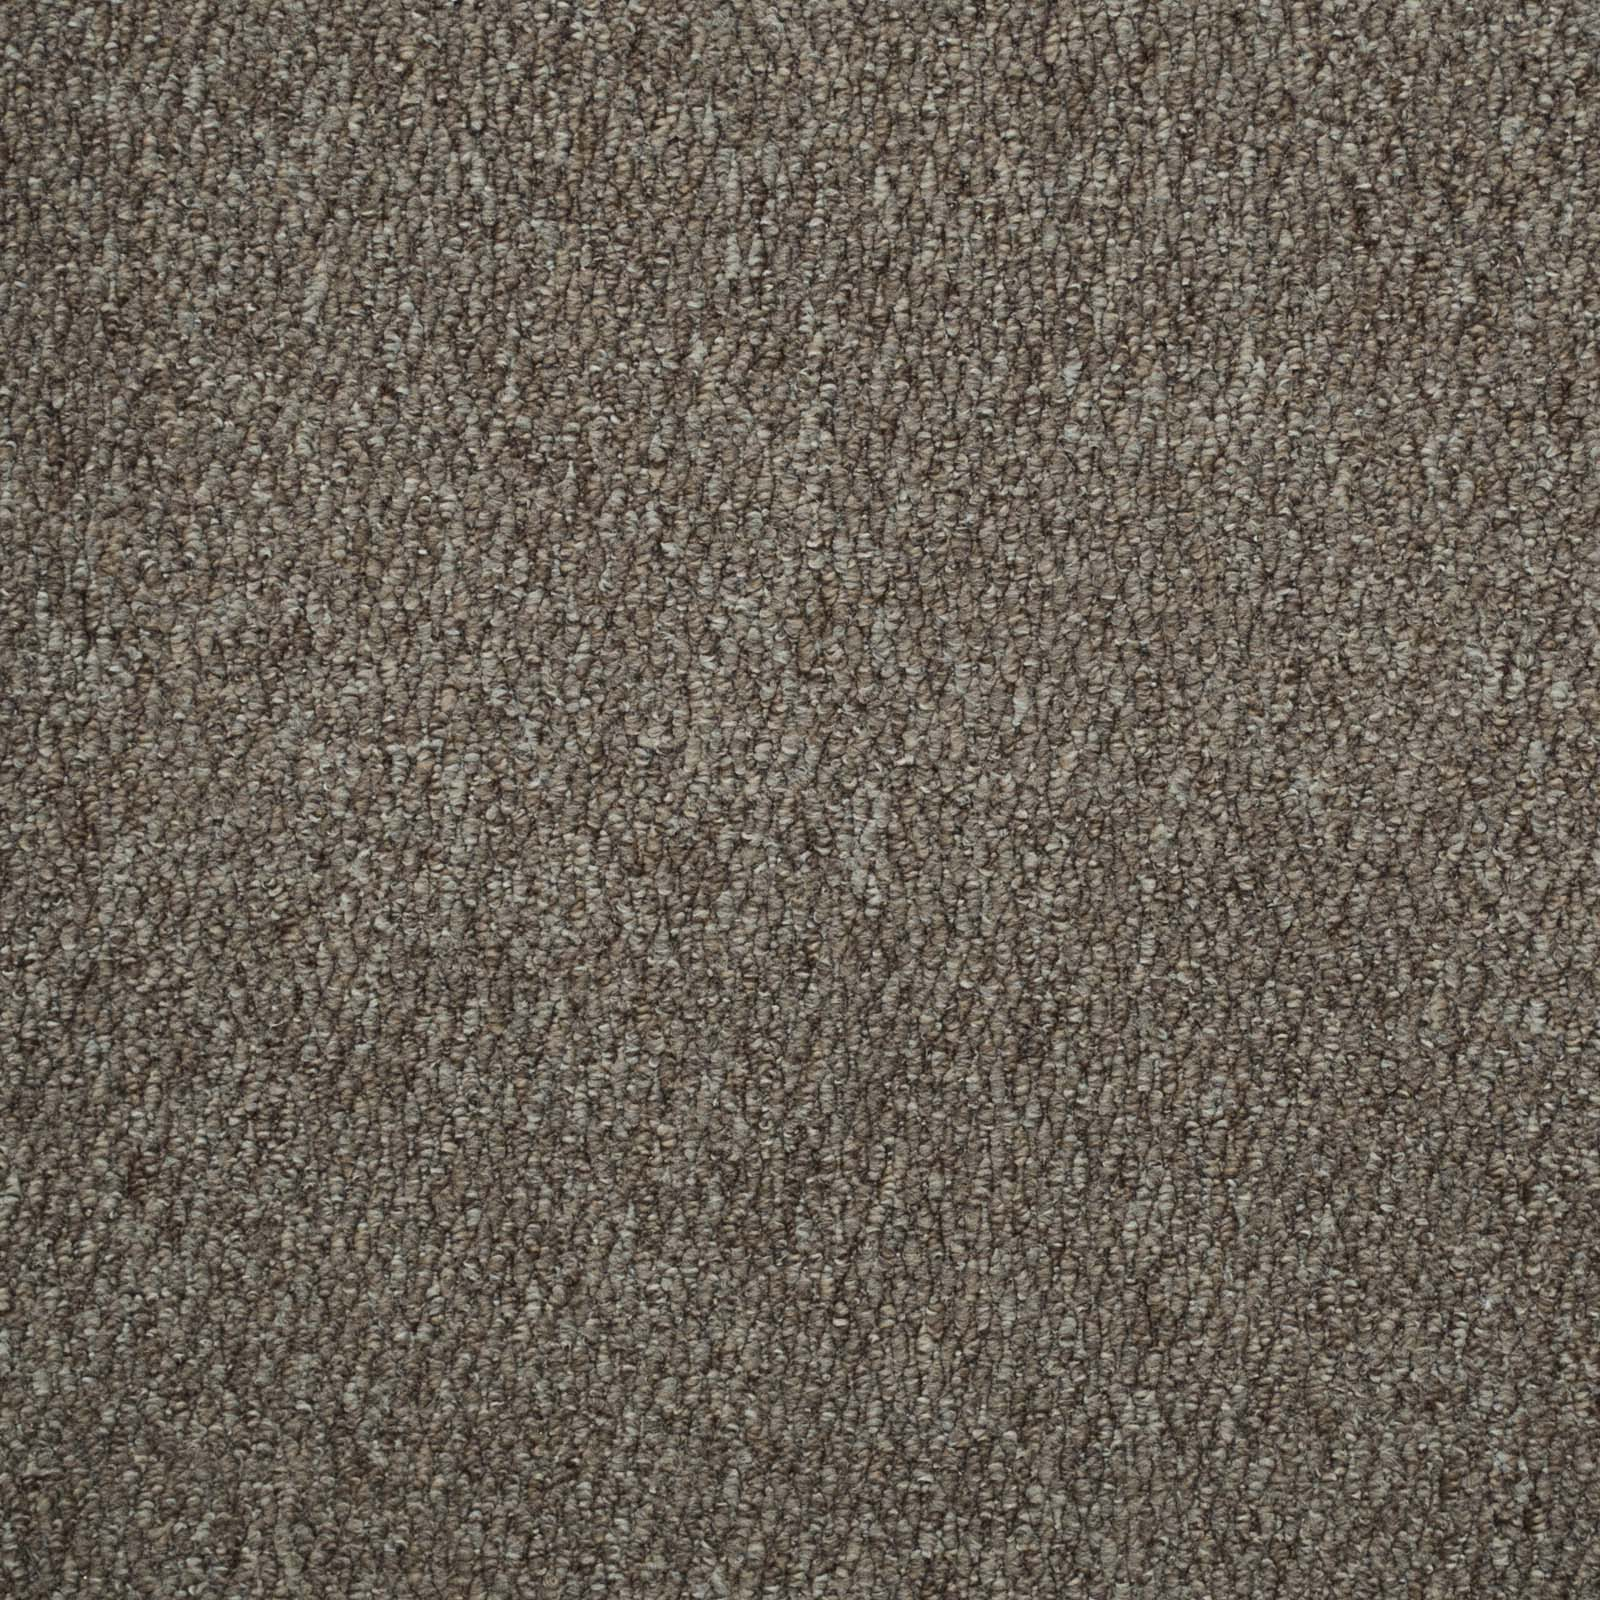 Beige Brown Port Loop Carpet - Far